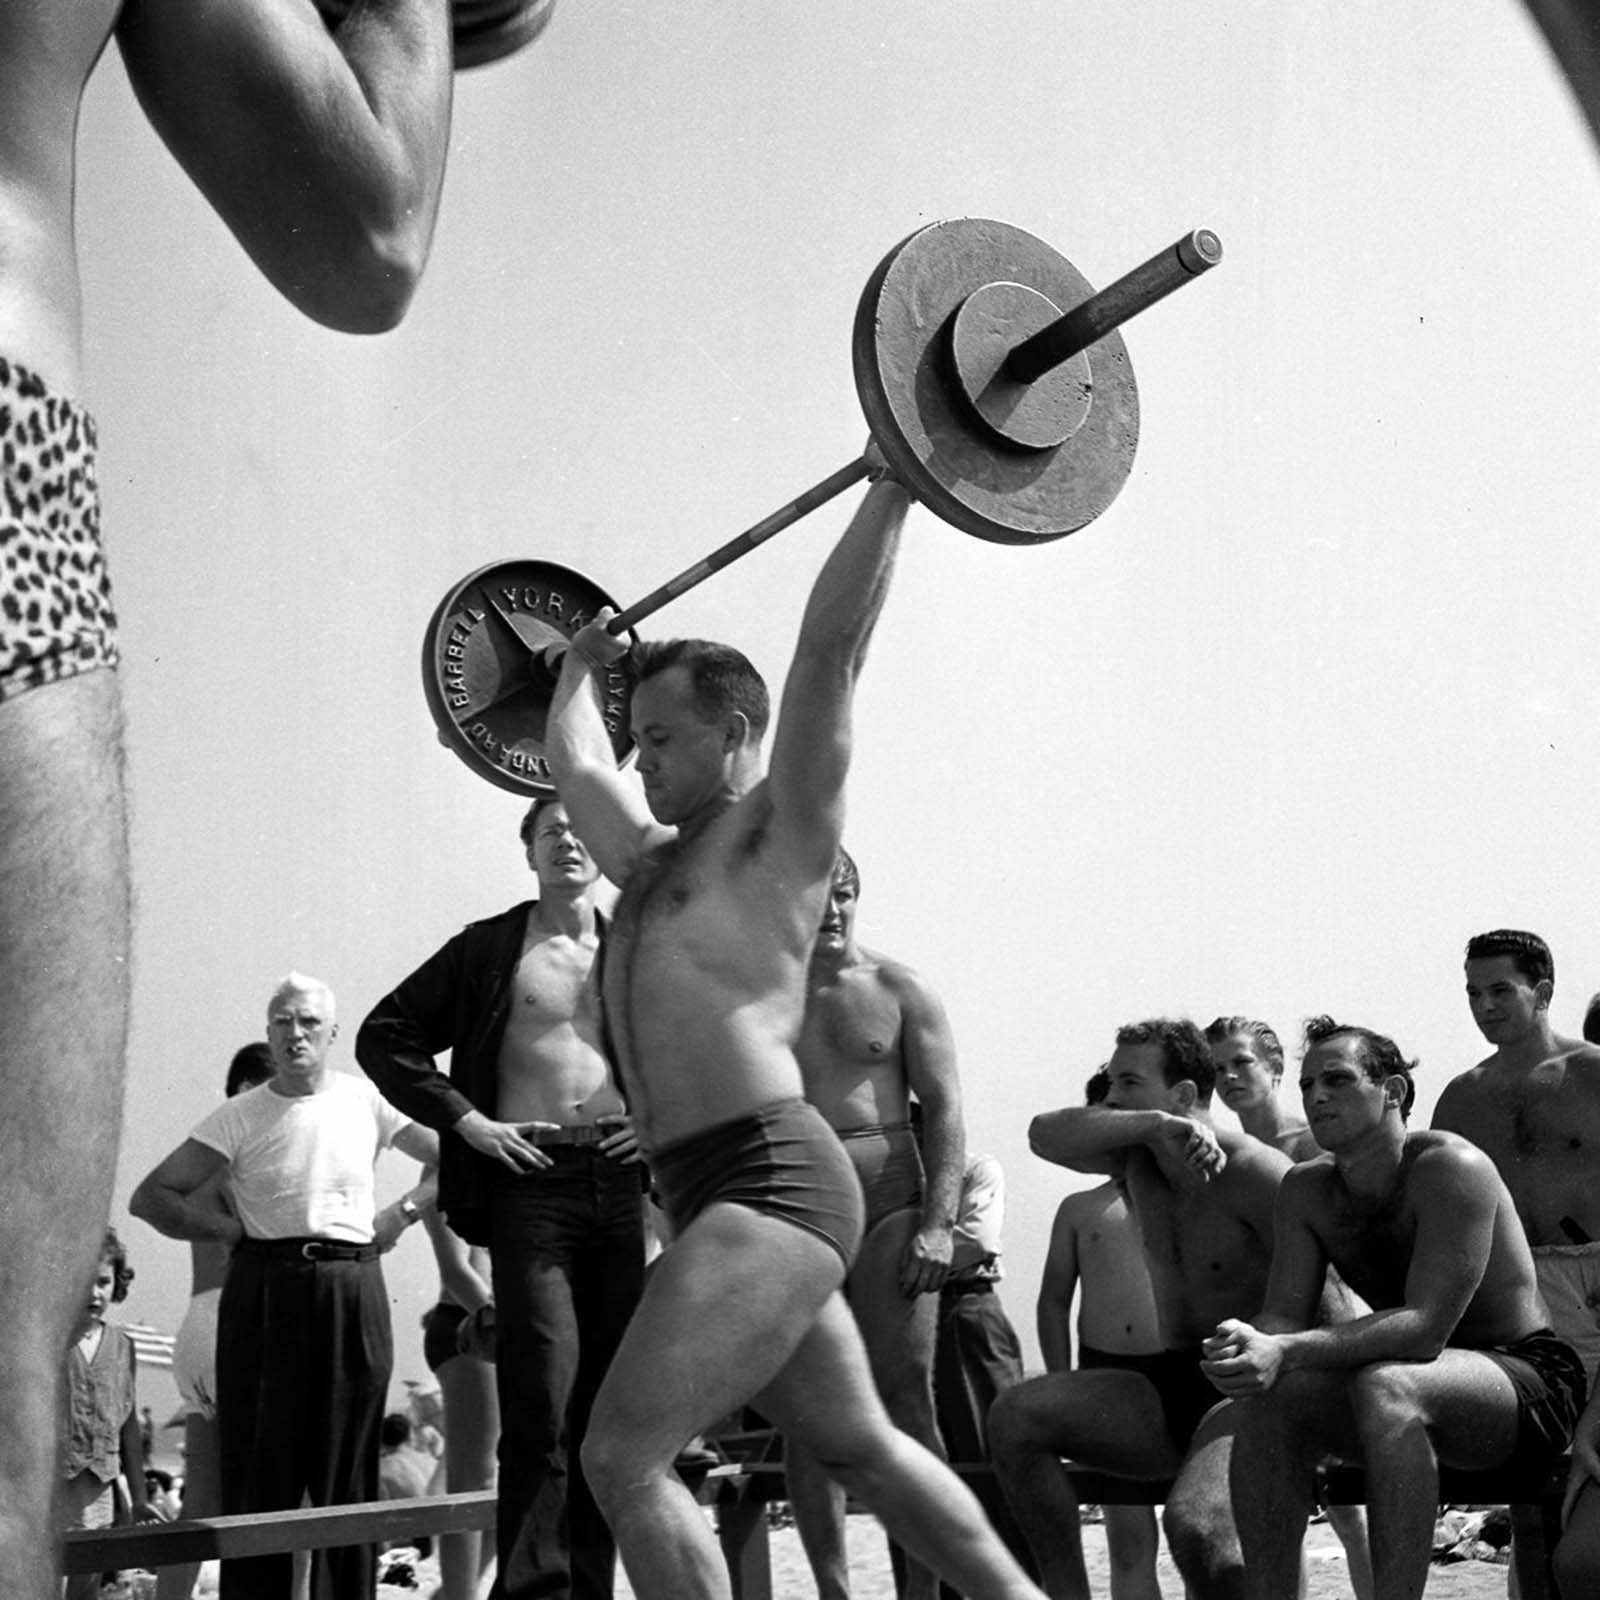 Lifting at the Muscle Beach.